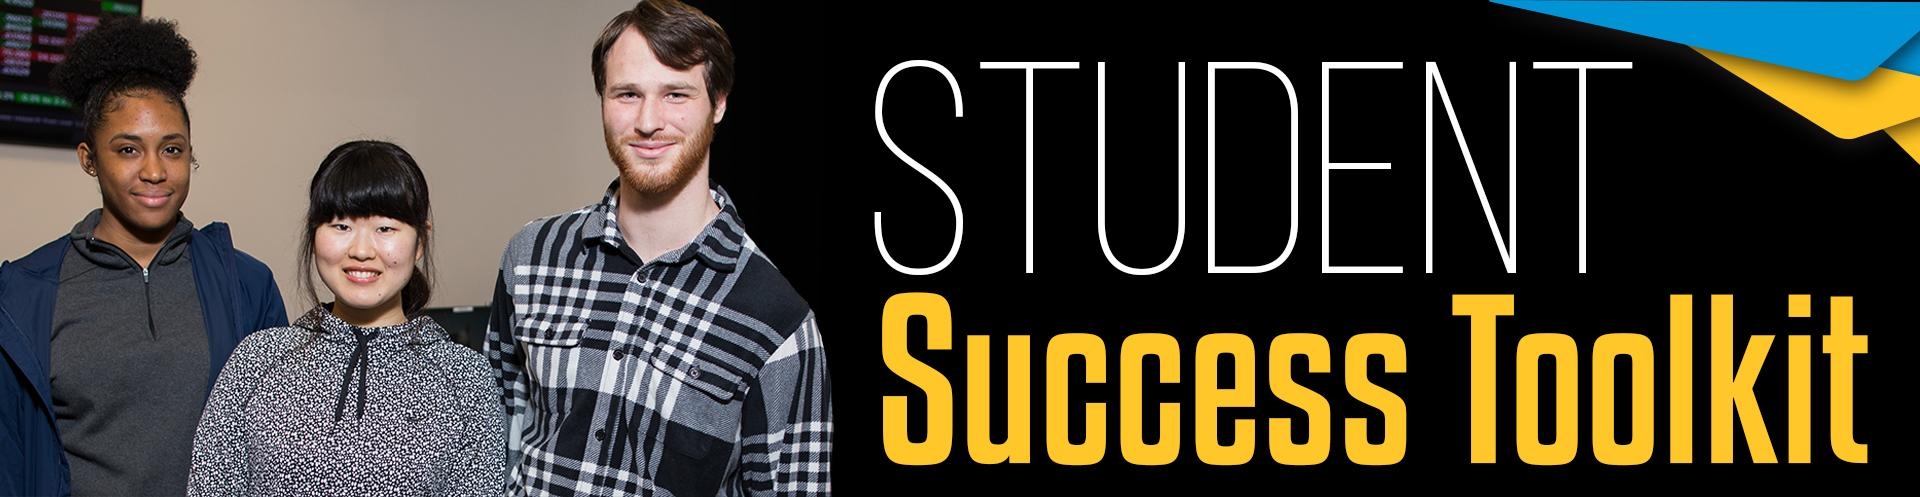 Student Success Toolkit